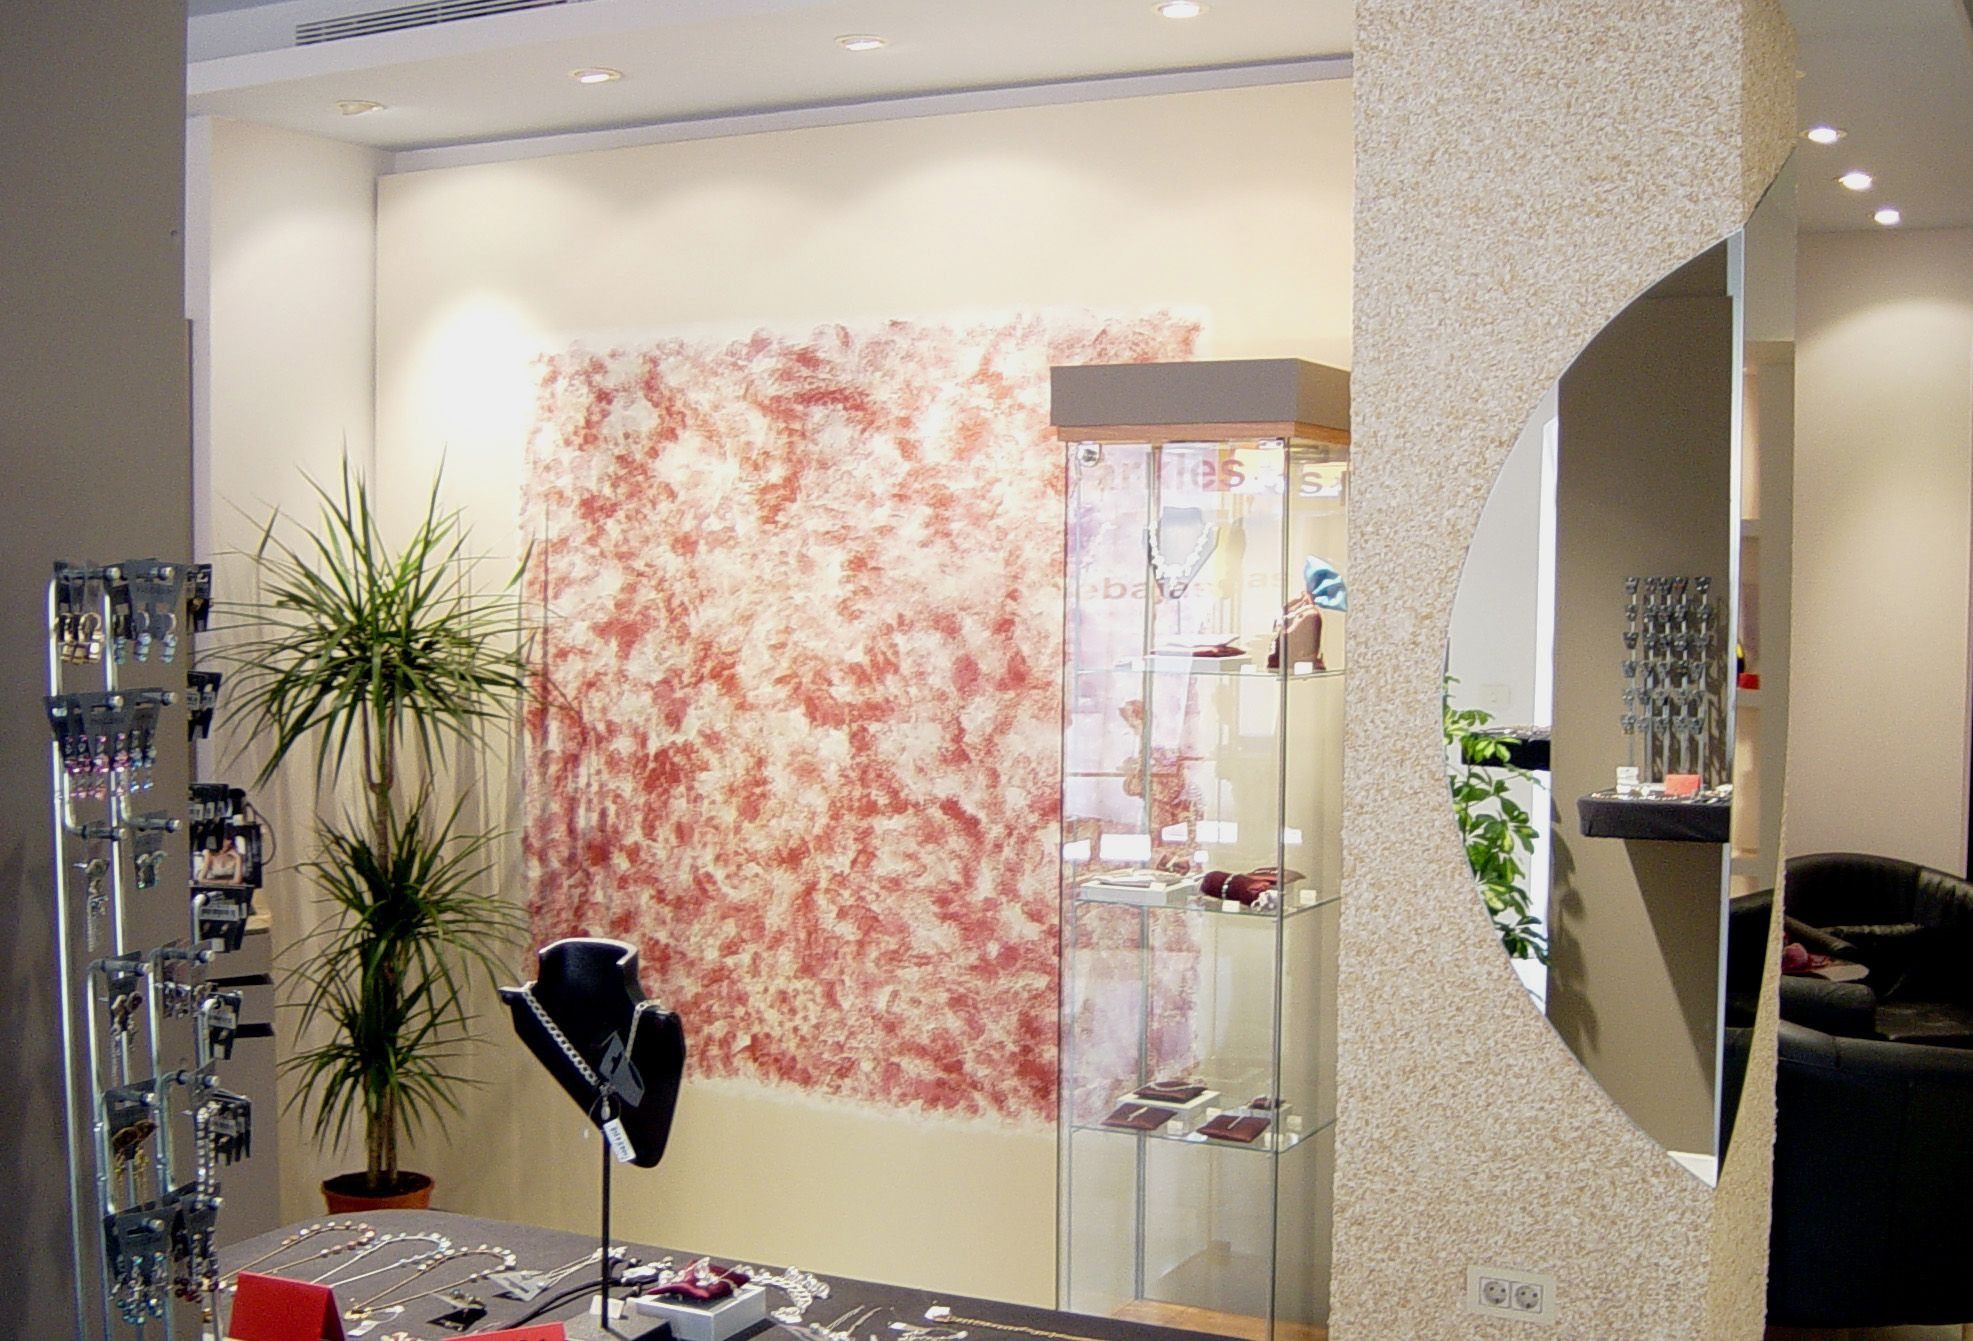 Raw Interiors Marbella : Main display for a fashion accessories boutique in marbella spain